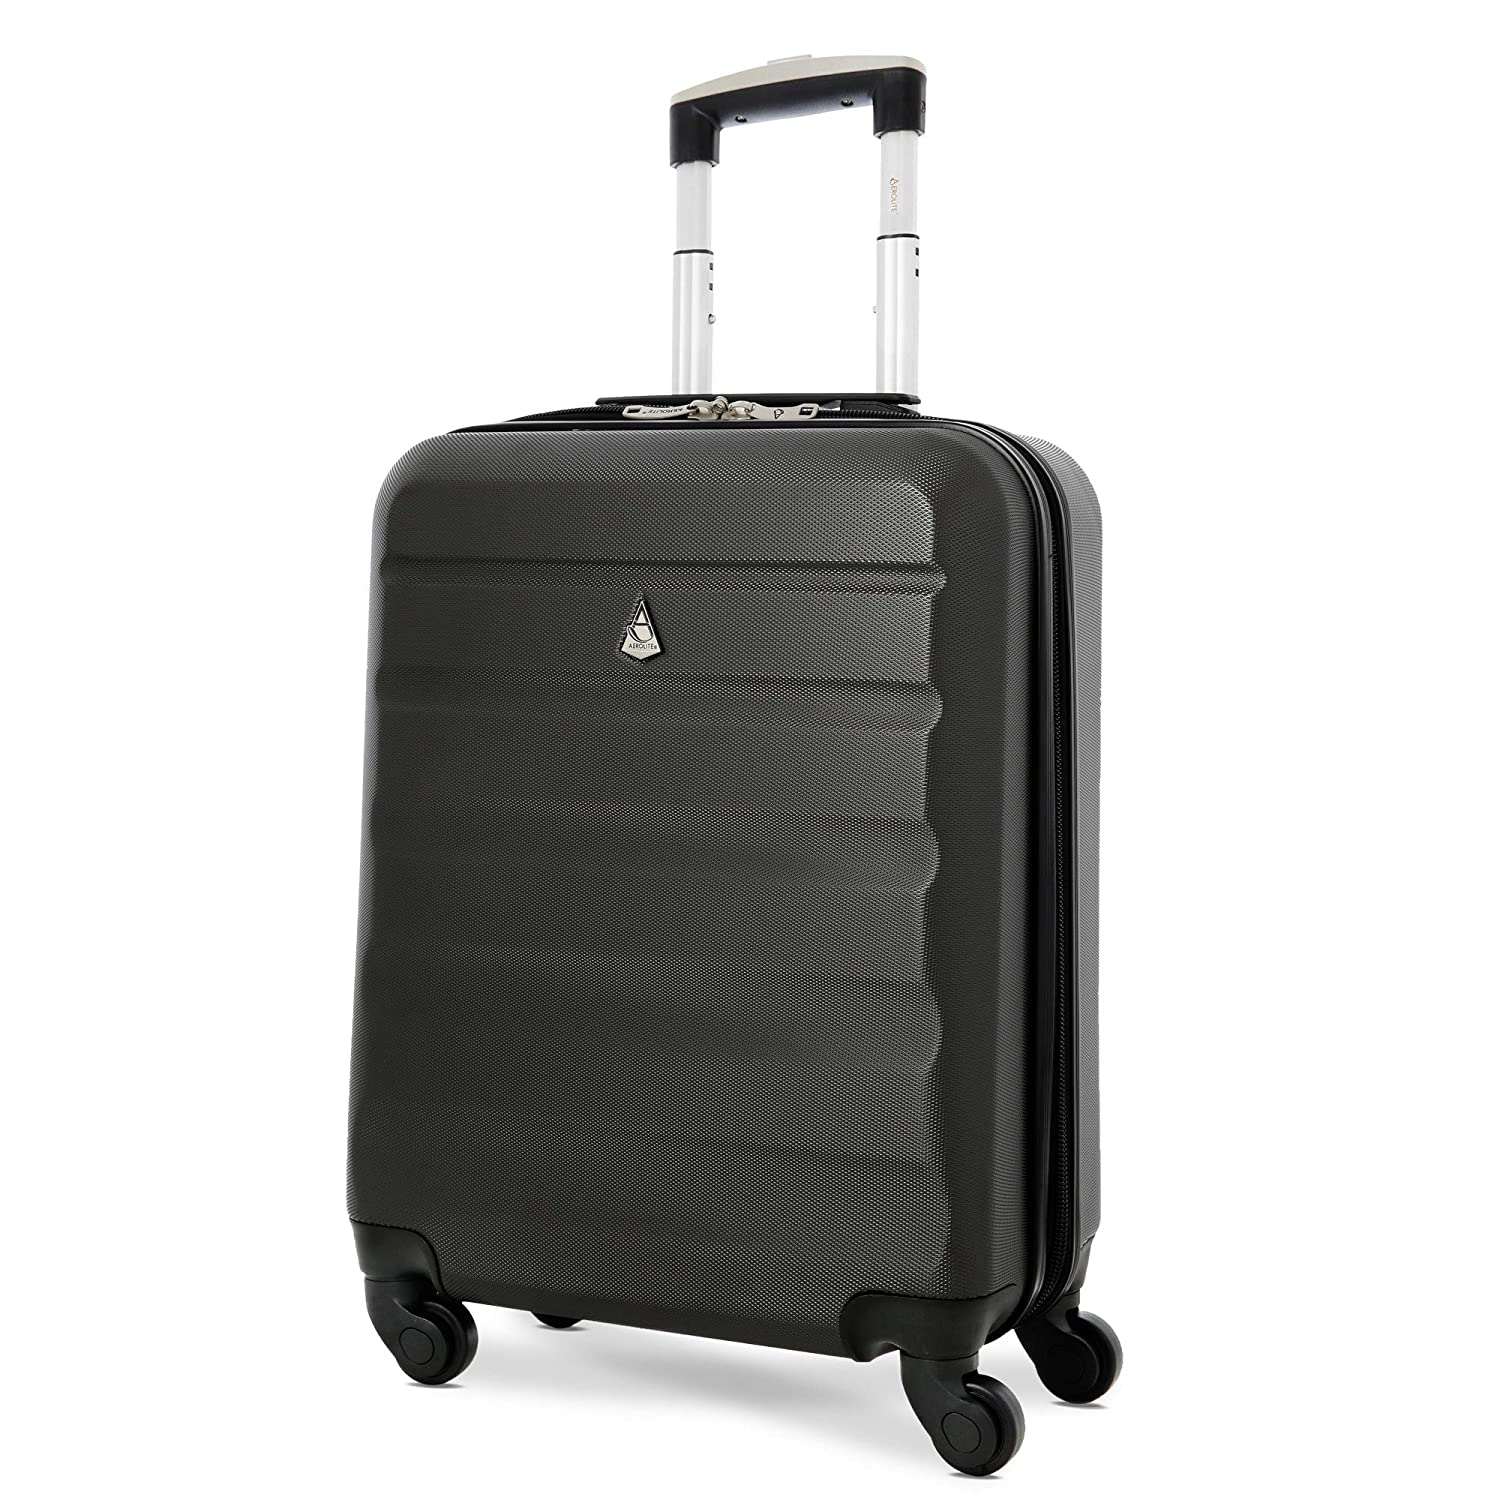 Aerolite 55x40x20 Ryanair Maximum Allowance 40L Lightweight Hard Shell Carry On Hand Cabin Luggage Suitcase with 4 Wheels - Also Approved for easyJet, British Airways, Jet2 and More (Charcoal)